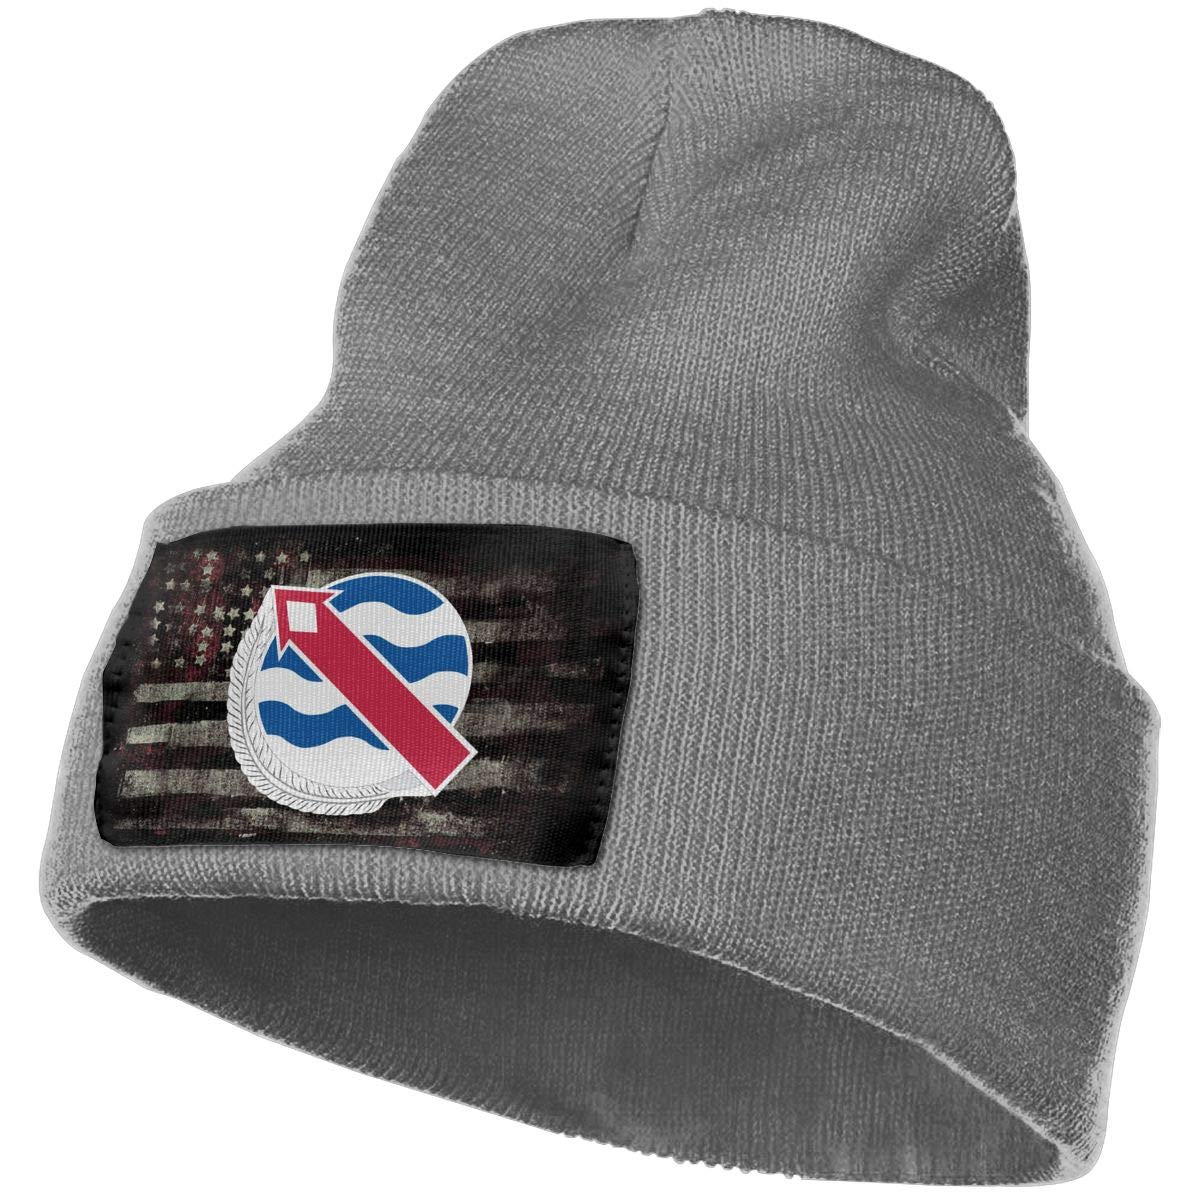 US Army Pacific Command Unit Crest Mens Beanie Cap Skull Cap Winter Warm Knitting Hats.